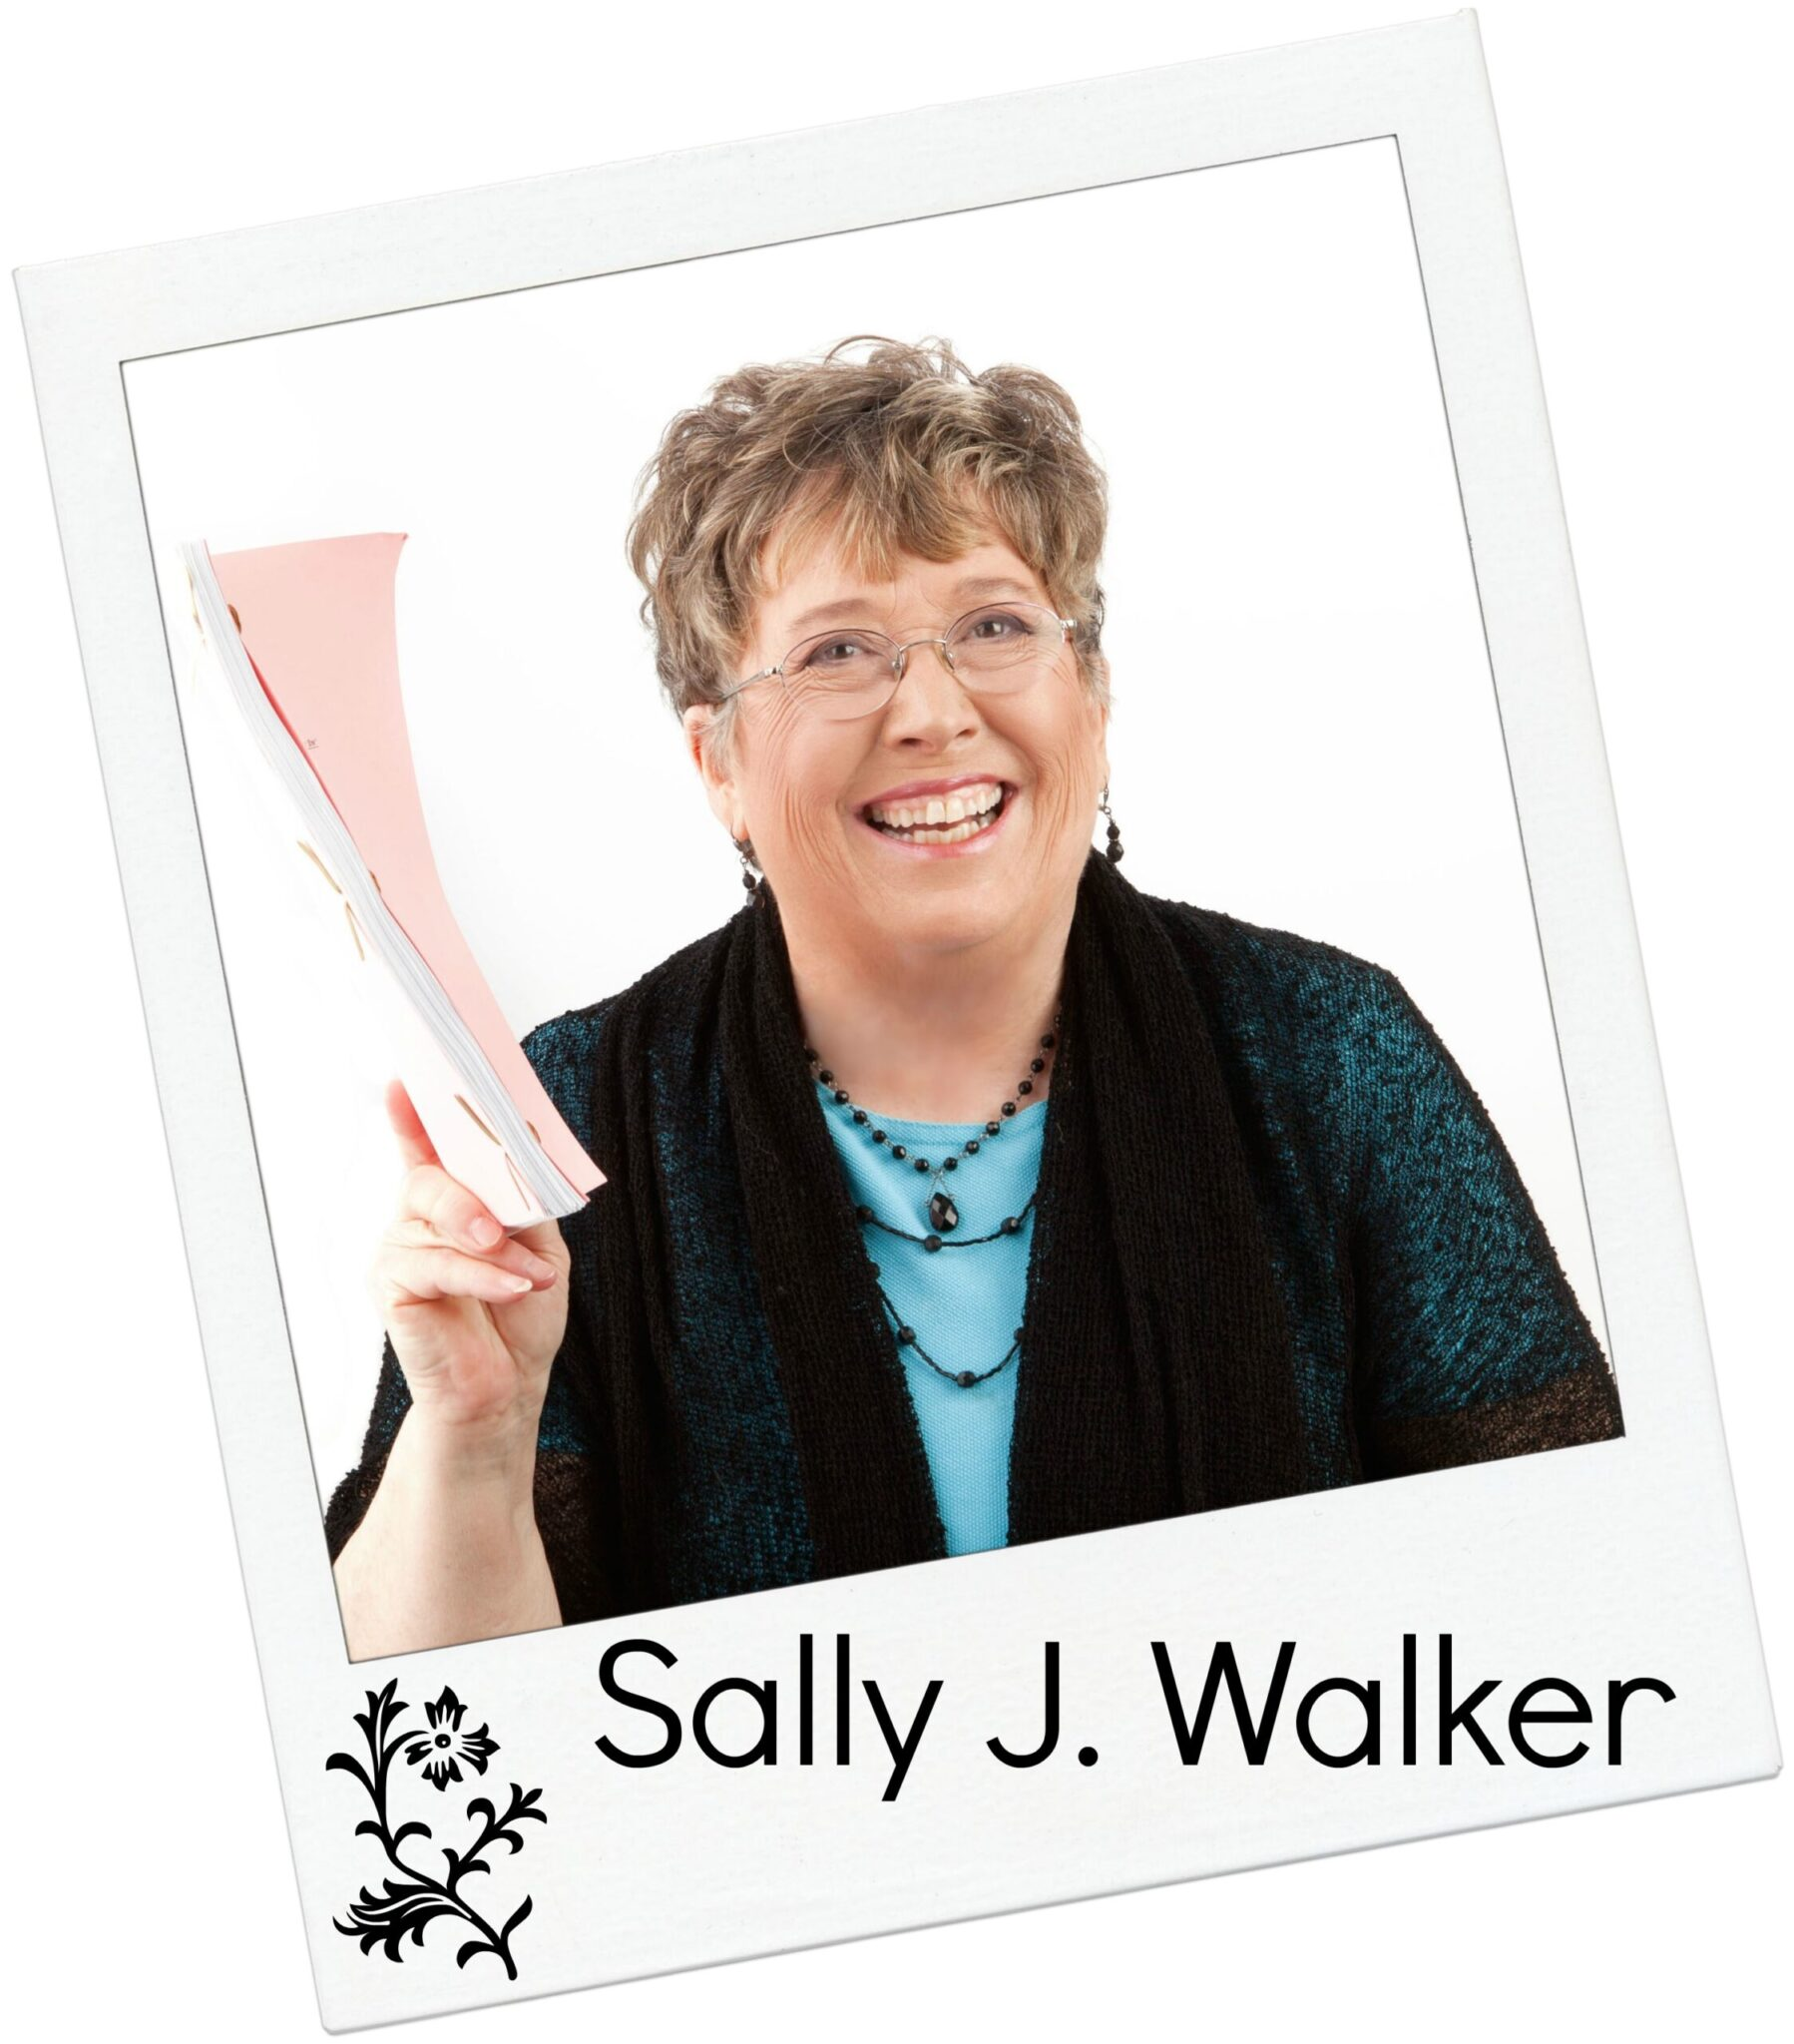 Sally J. Walker